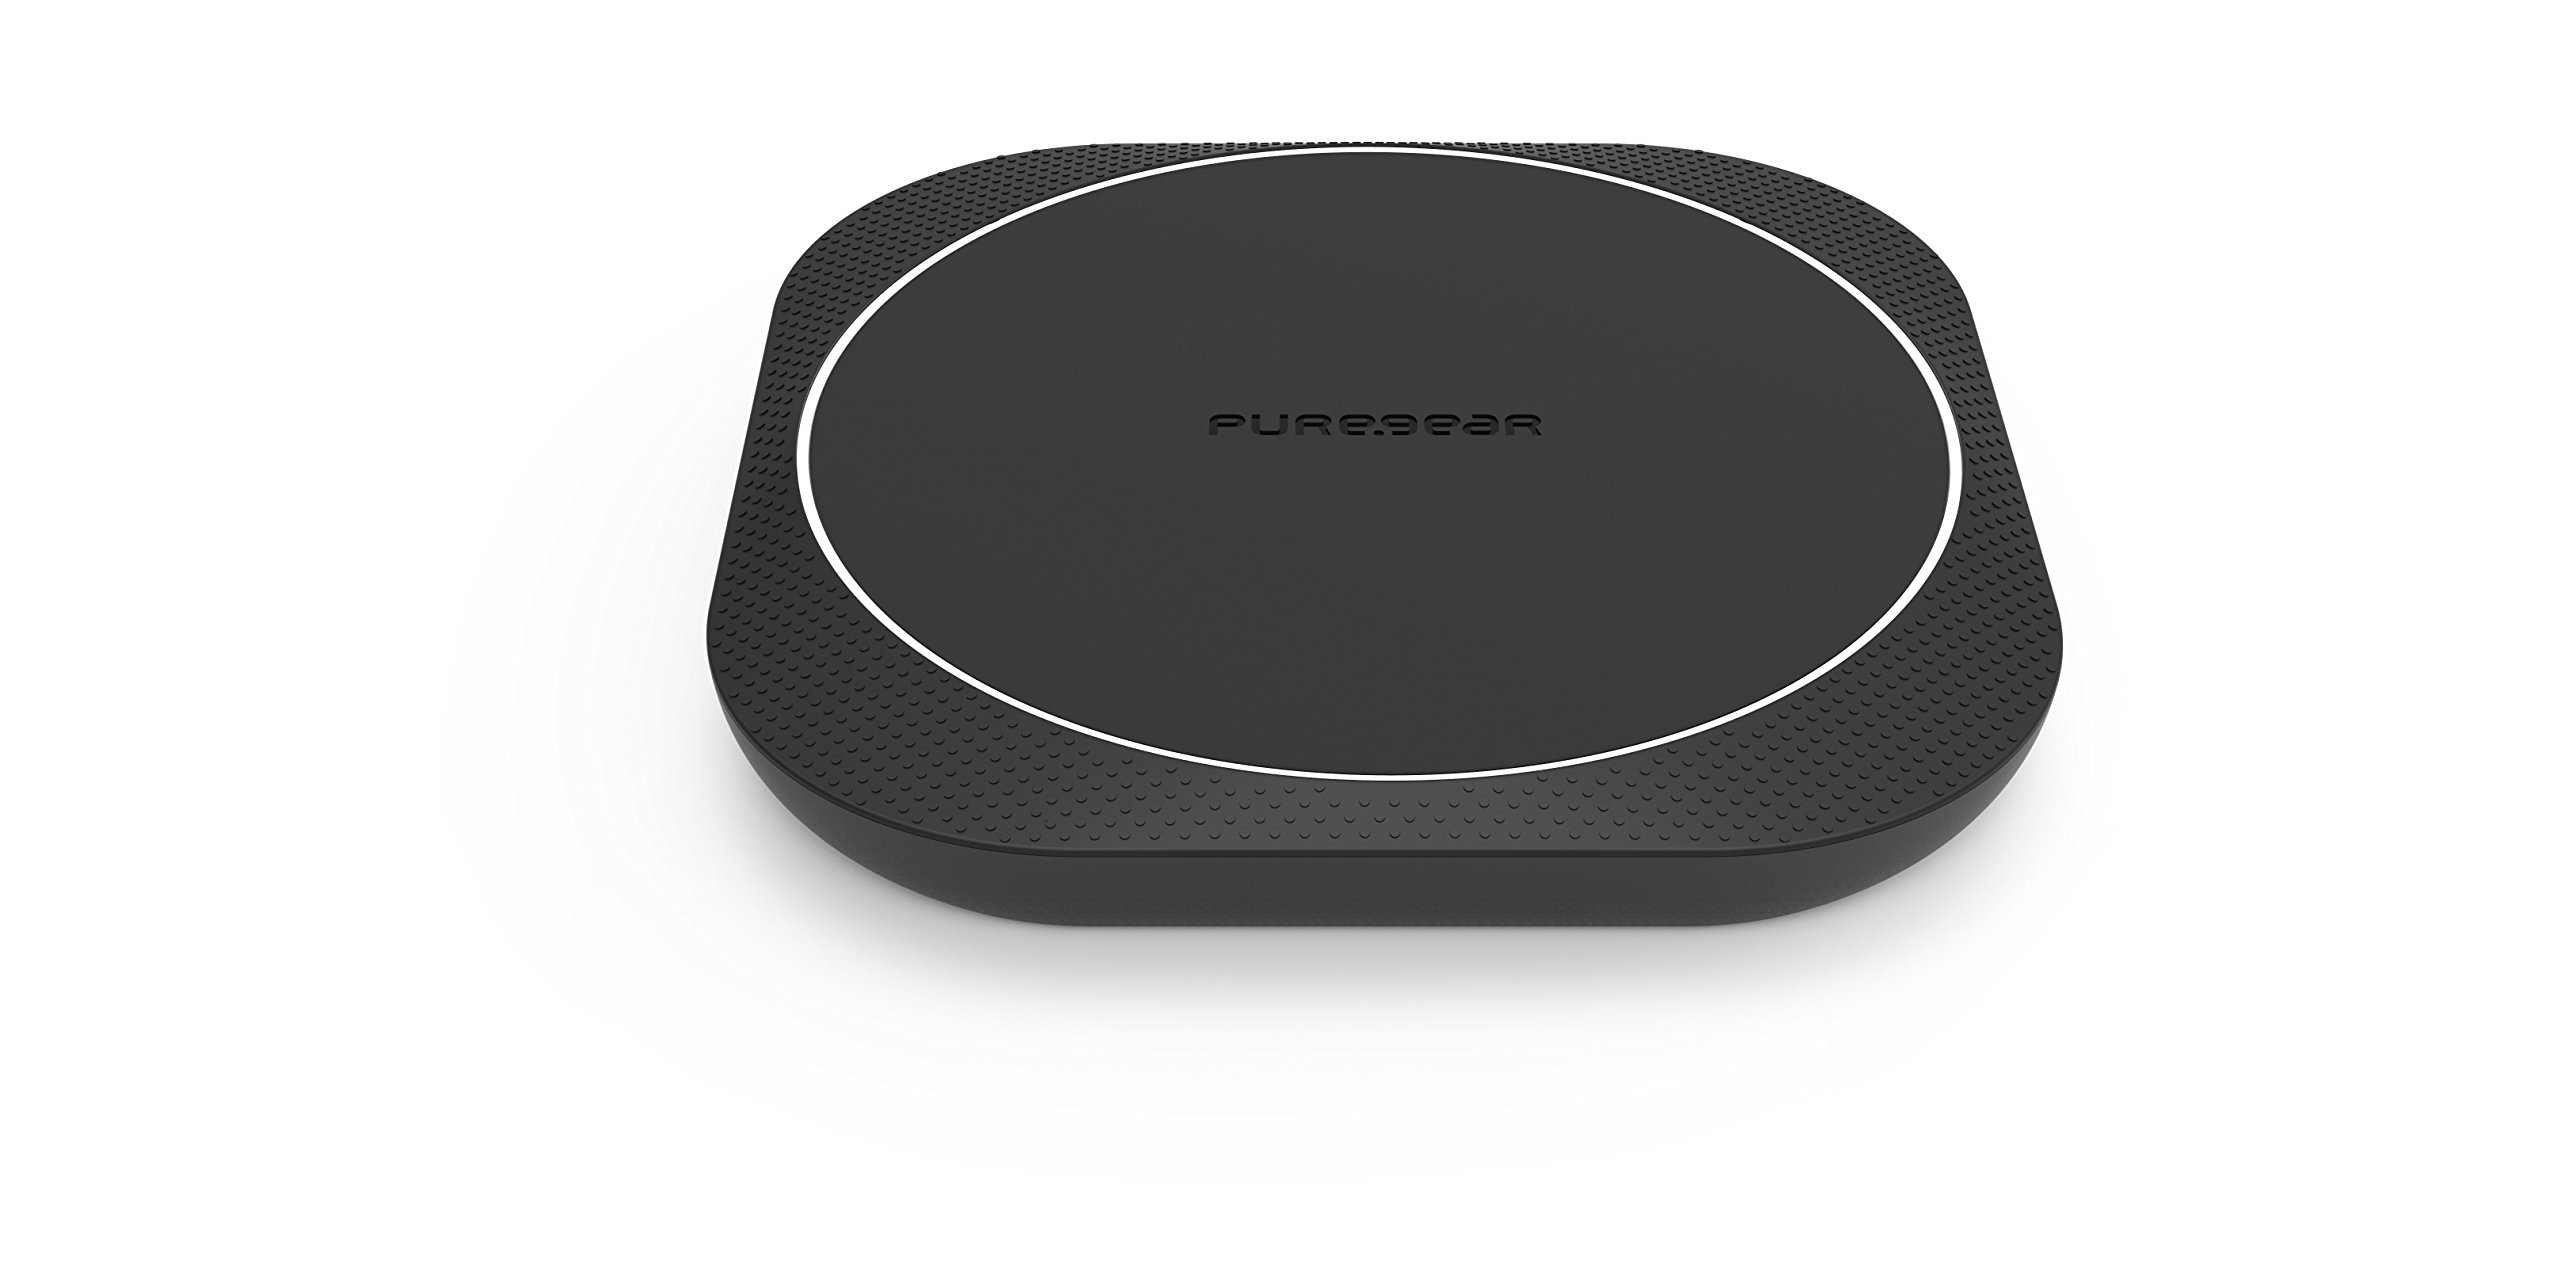 PureGear 10W Wireless Charging Pad, Qi-Certified Wireless Charger + QC 3.0 Wall Charger Adapter + 5ft Micro USB Cable by PureGear